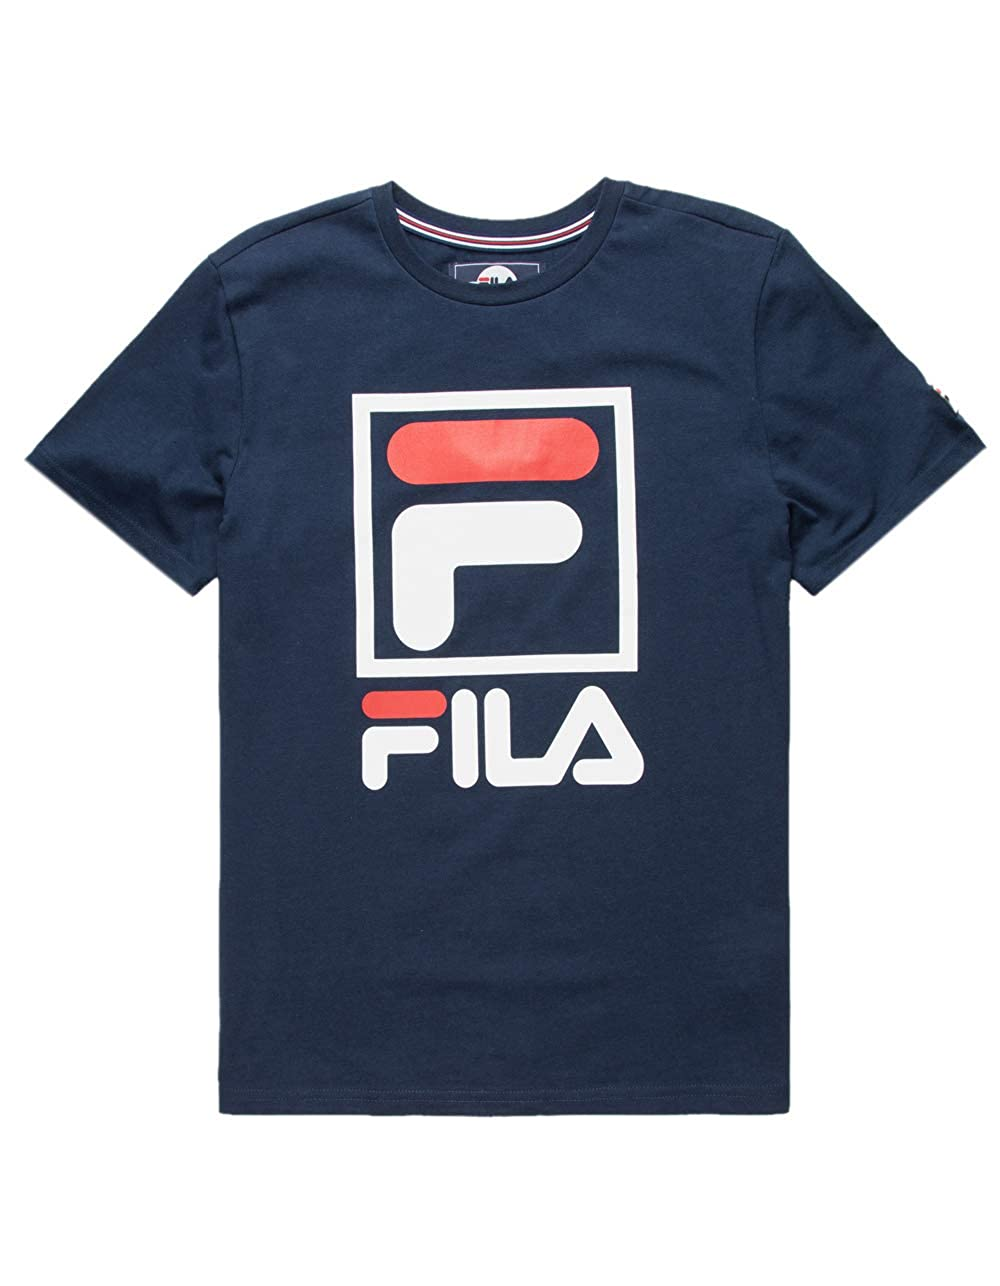 6d48f2f06bb5 Amazon.com  Fila Stacked Logo Navy Boys T-Shirt